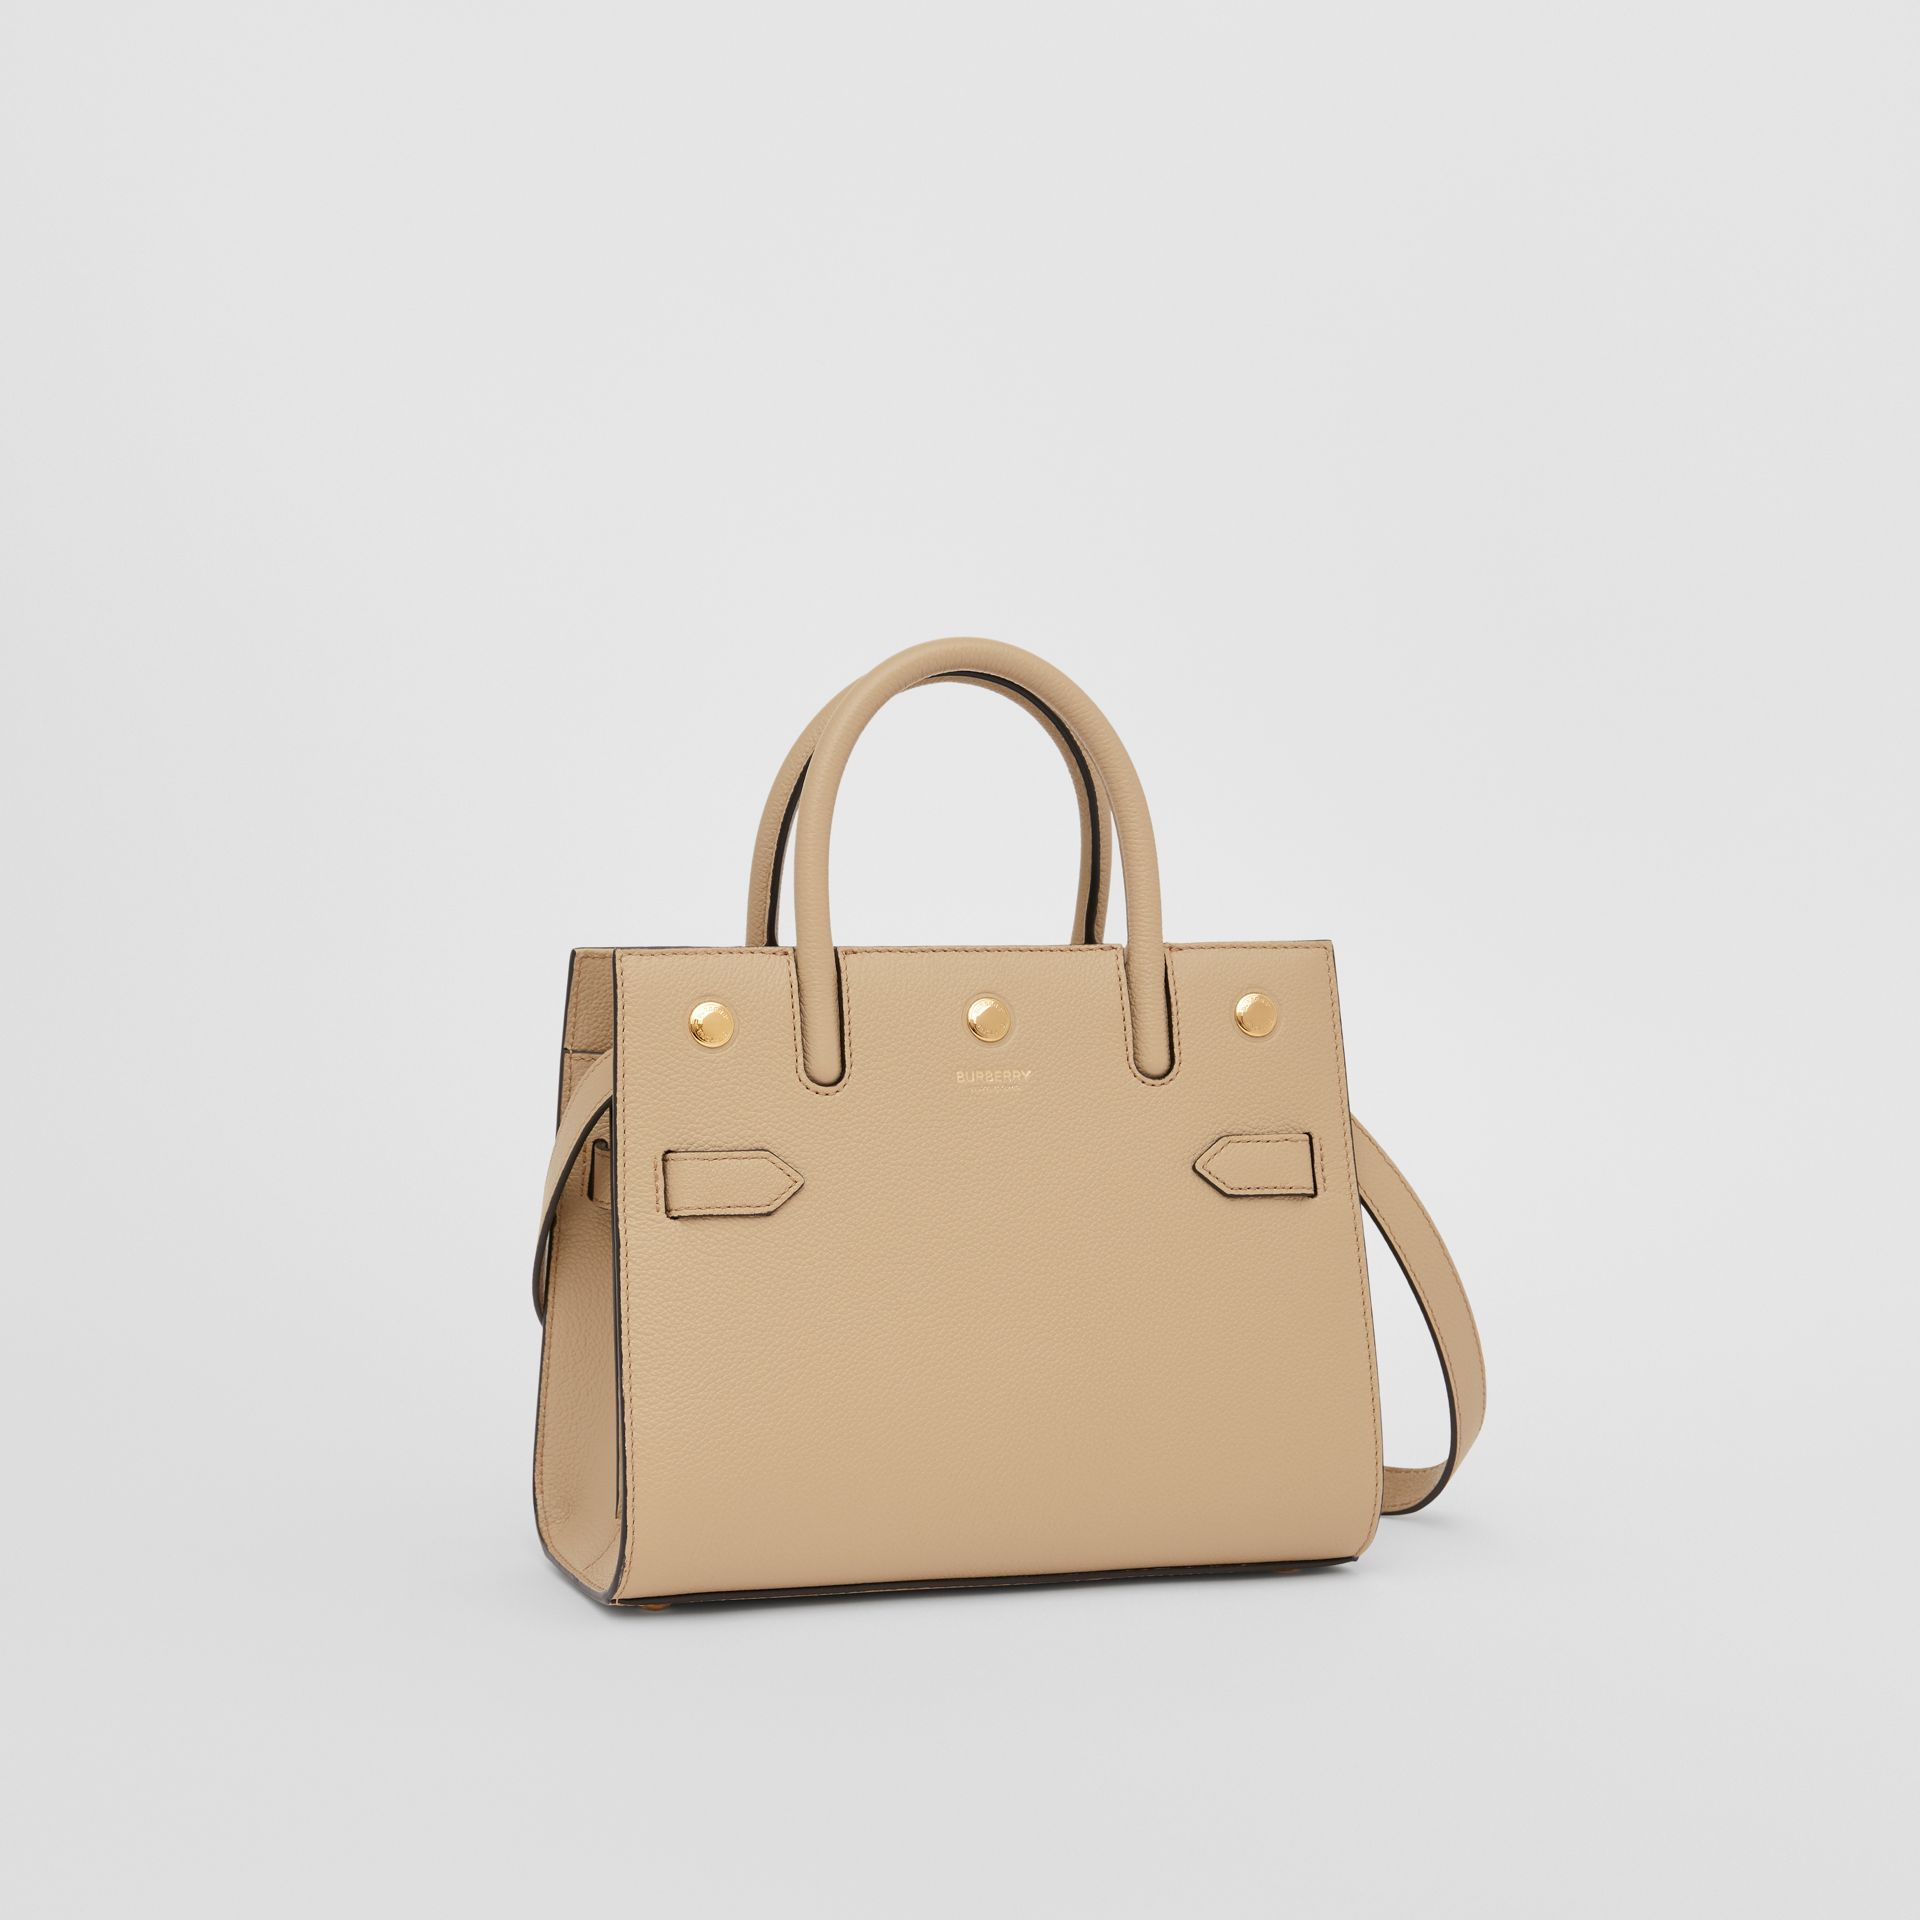 Mini Leather Two-handle Title Bag in Light Beige - Women | Burberry United Kingdom - gallery image 6